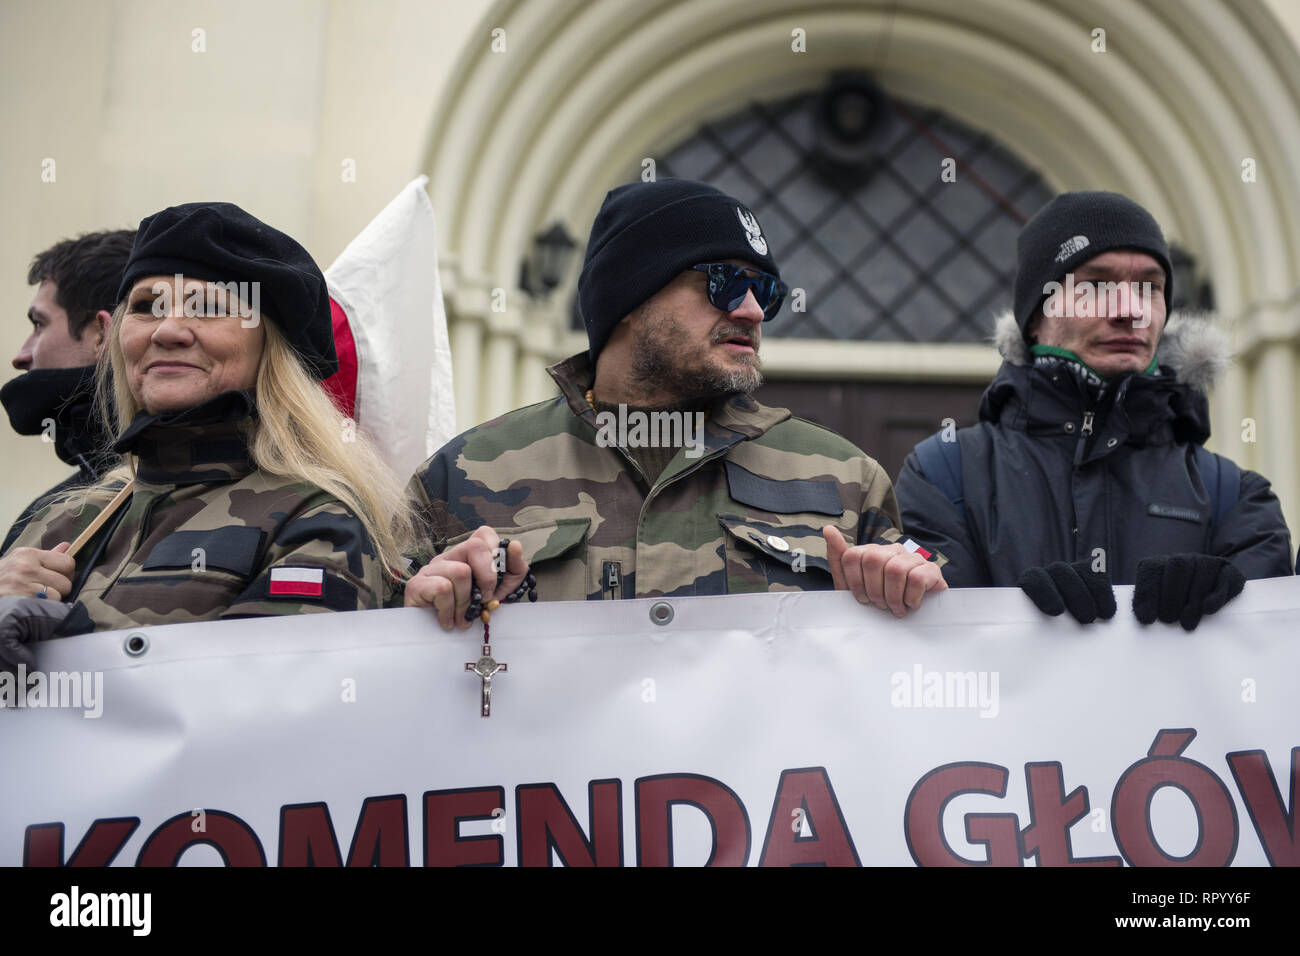 Hajnowka, Poldlaskie, Poland. 23rd Feb, 2019. Nationalists in military clothes are seen during the march.Polish nationalists organized a commemorative march of the 'Cursed Soldiers'' in the city of Hajnowka next to the Belarusian border. The Cursed Soldiers also known as the Doomed Soldiers were anti-communist resistant fighters after WWII, however they were also famous of committing crimes against civilians, mostly ethnic Belarusians. Credit: Attila Husejnow/SOPA Images/ZUMA Wire/Alamy Live News - Stock Image